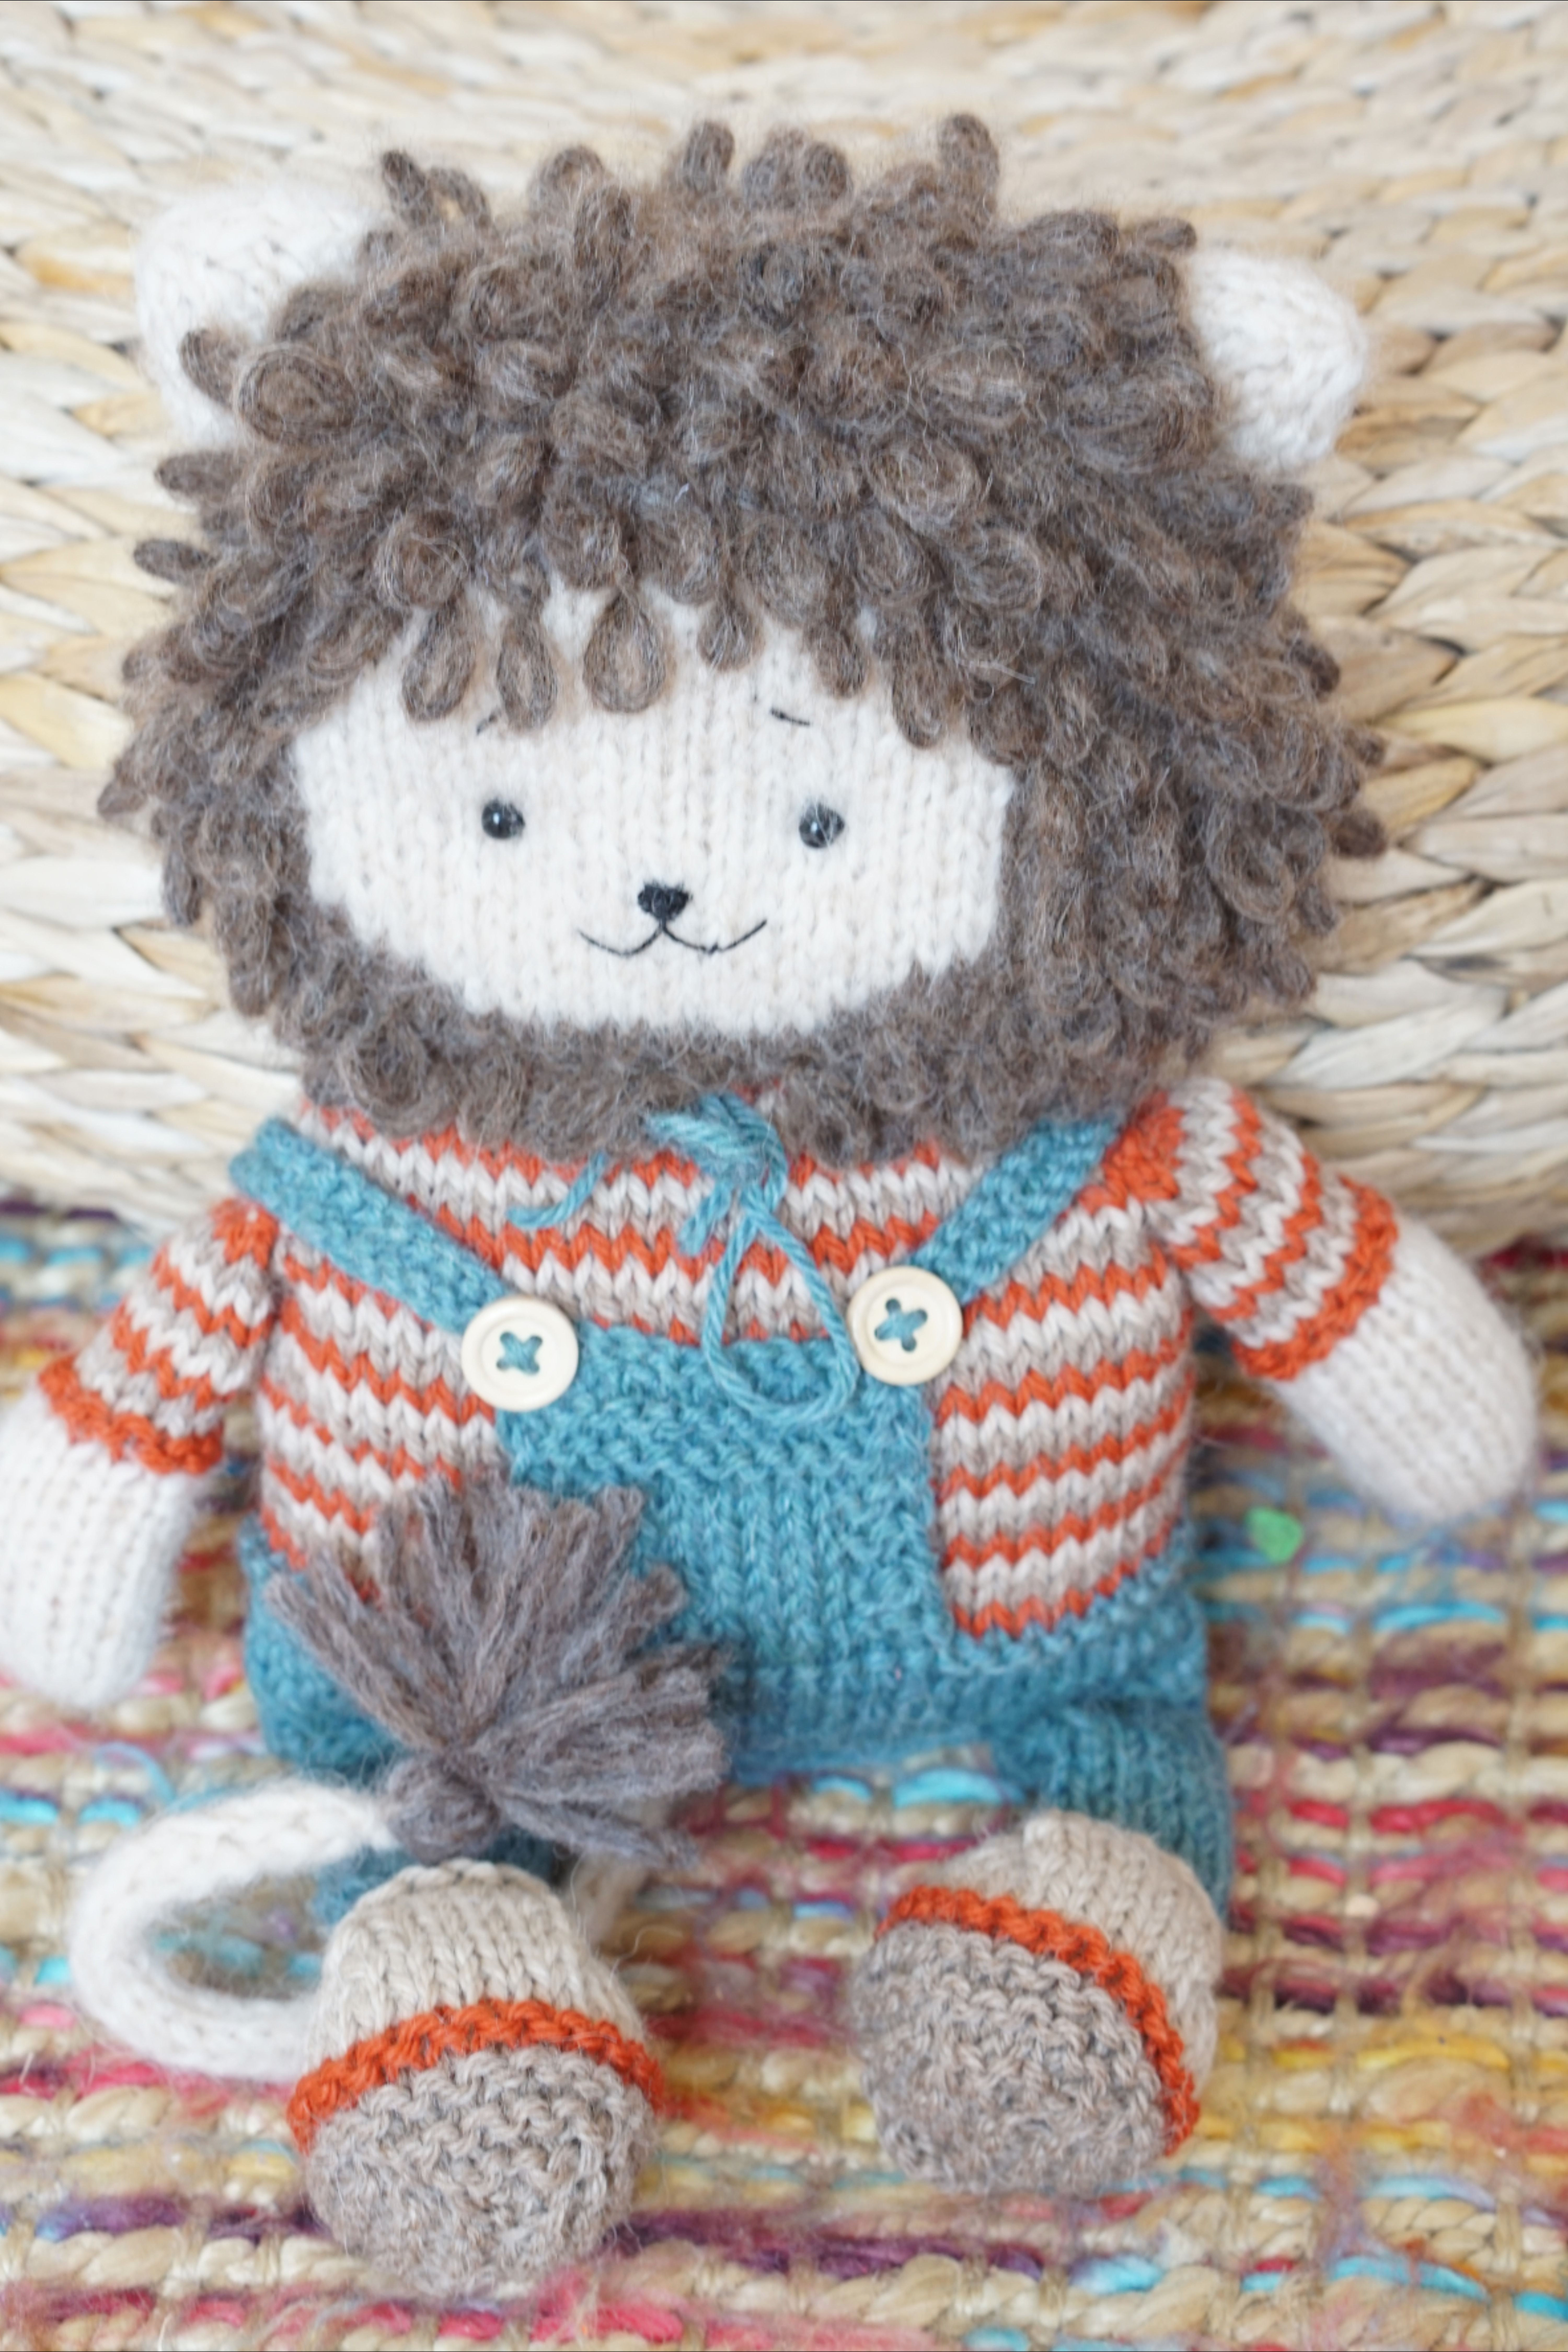 Toy knitting patterns pdf - Cute Lion Toy in 2020 ...